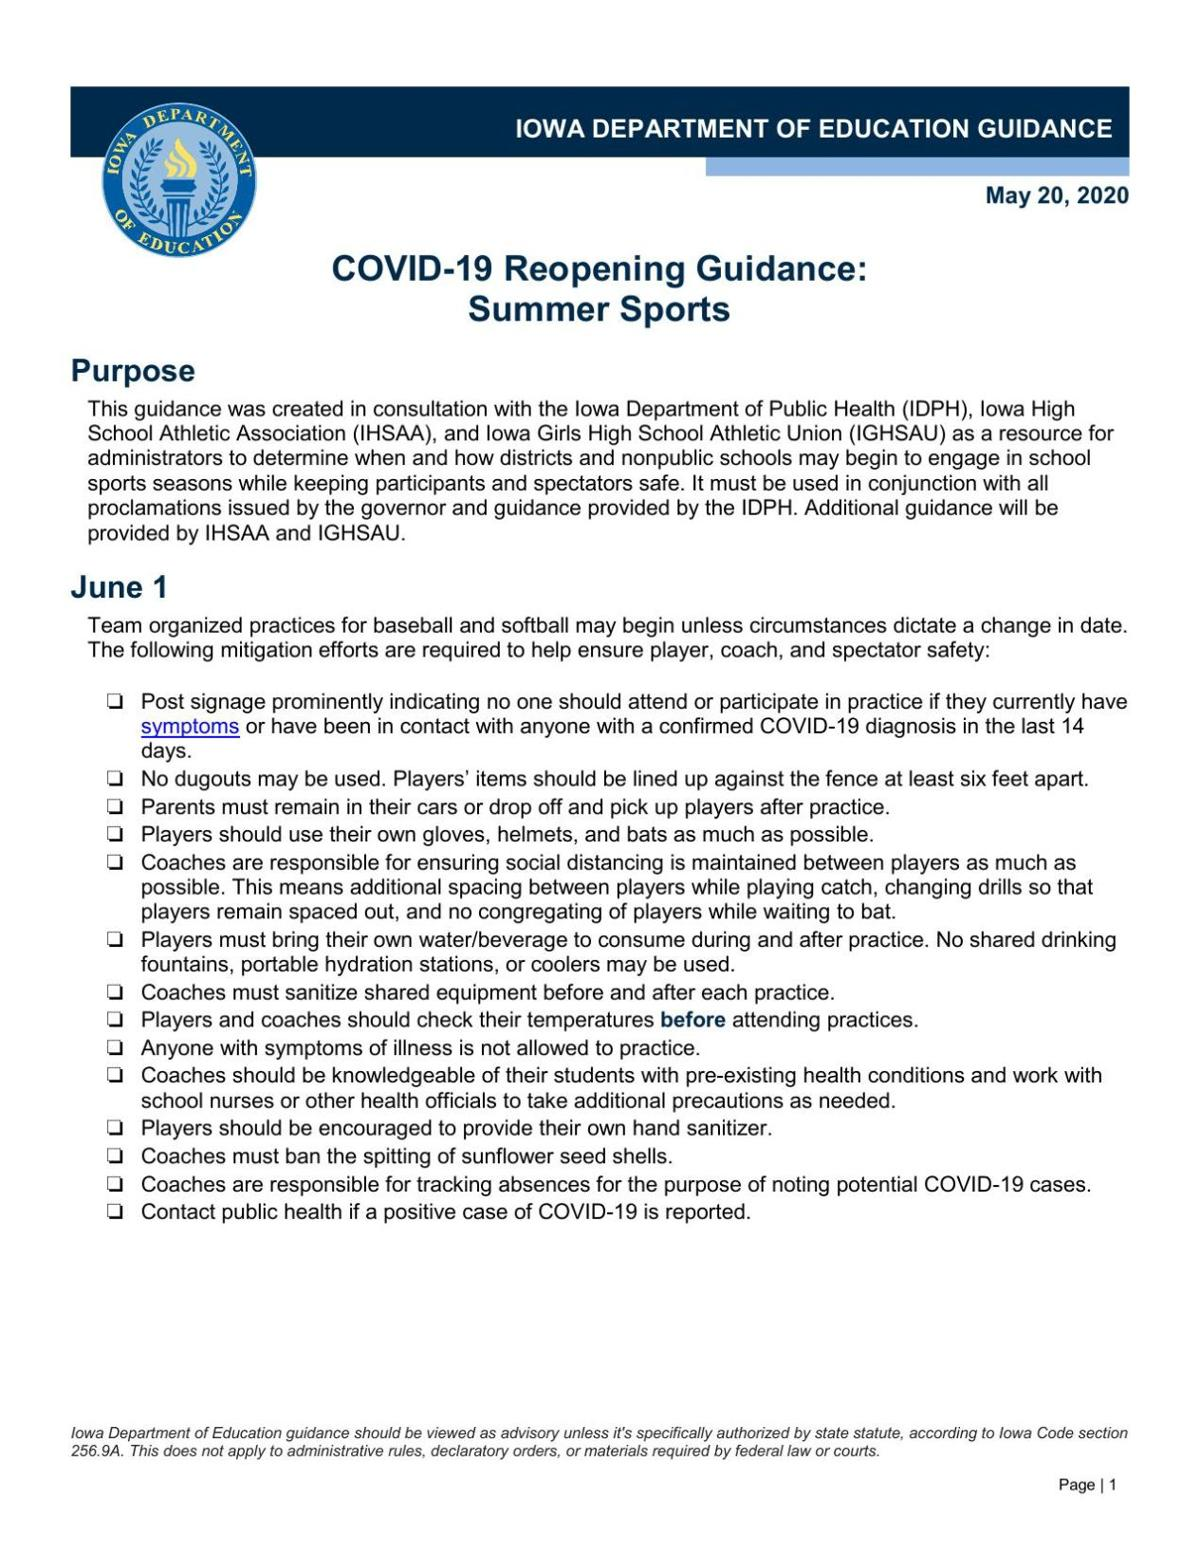 Department of Education guidelines